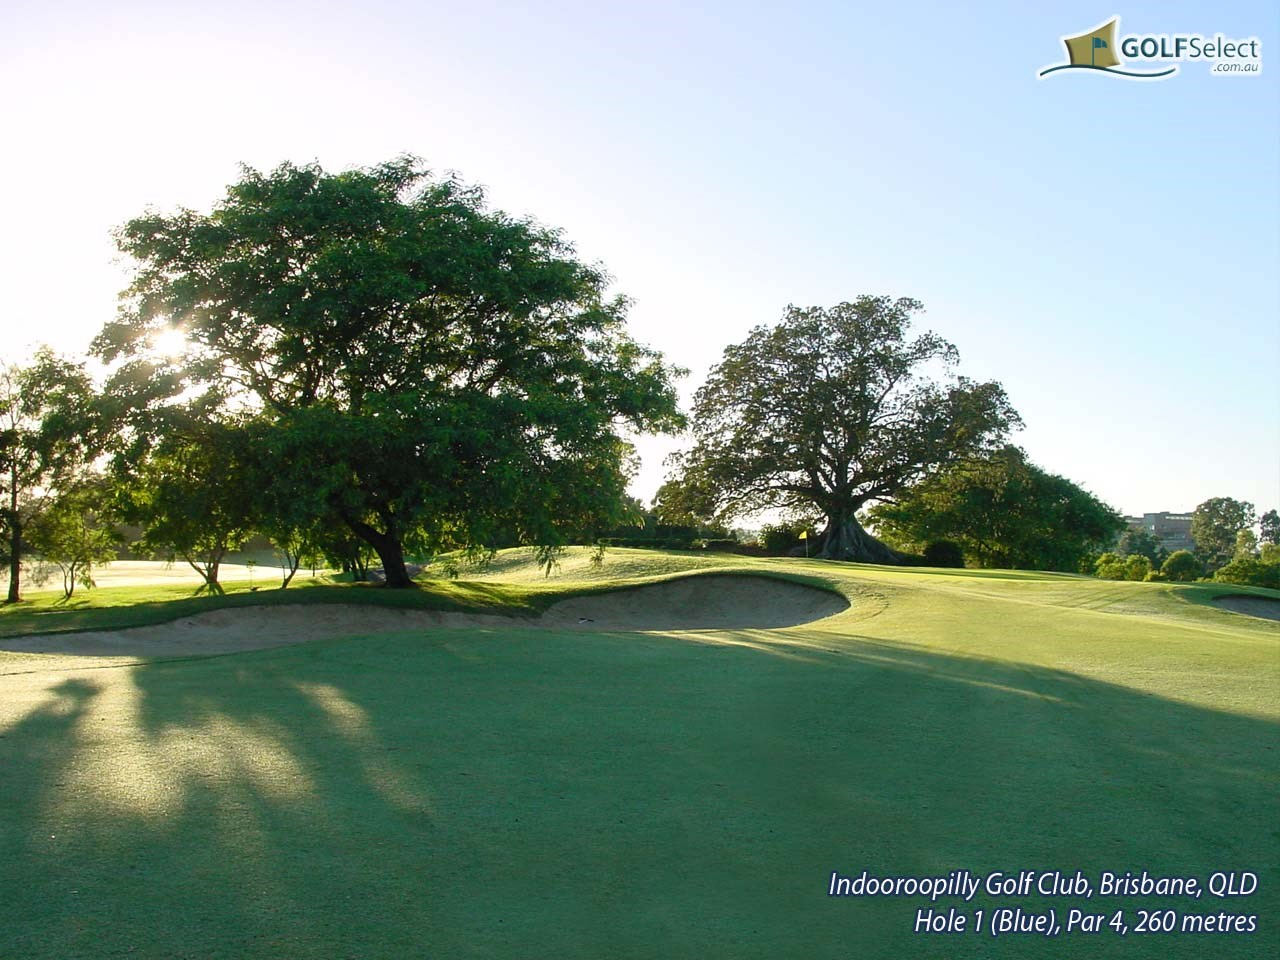 Indooroopilly Golf Club (East Course) Hole 1 (Blue), Par 4, 260 metres